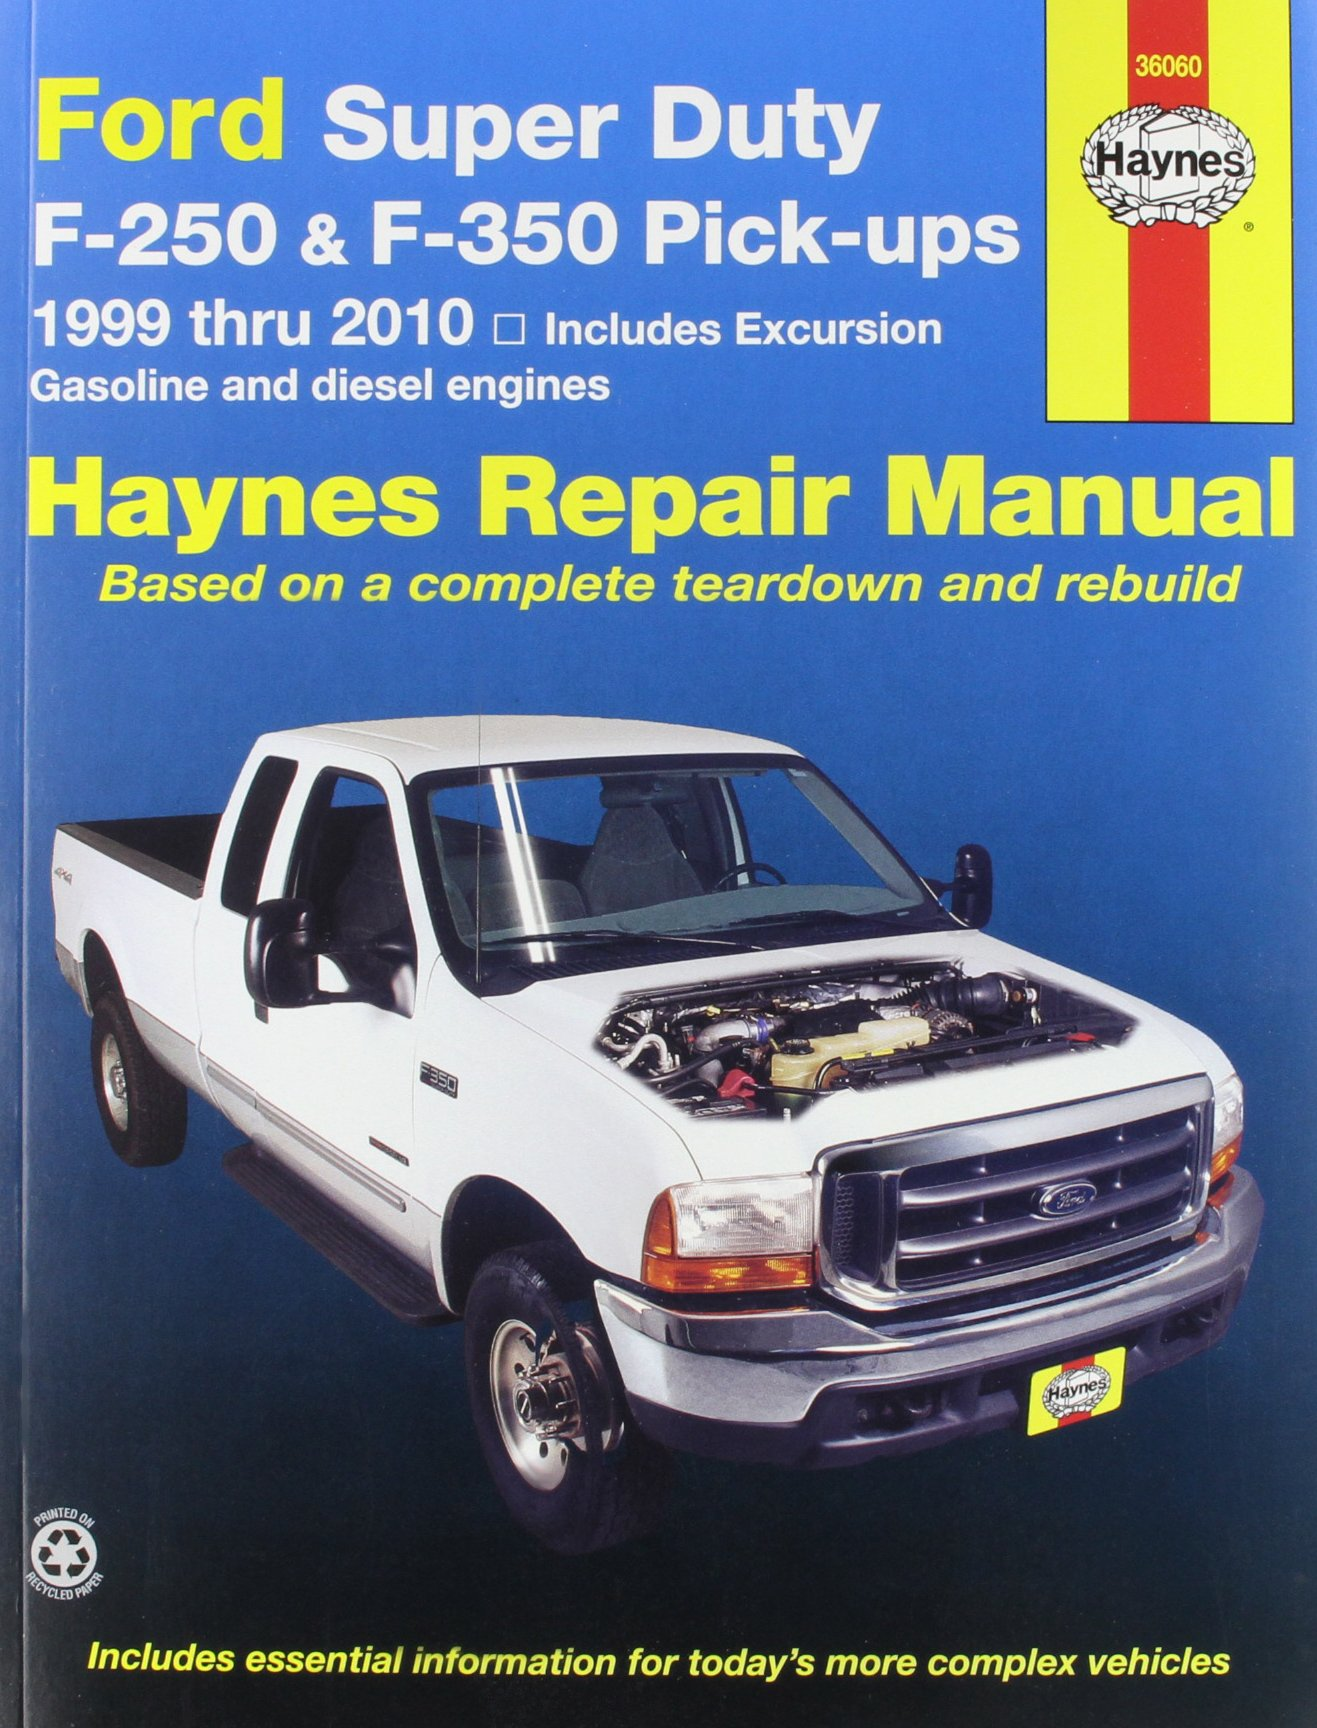 Haynes Ford Super Duty P/U and Excursion (99 - 02) Manual: Manufacturer:  0038345360602: Amazon.com: Books